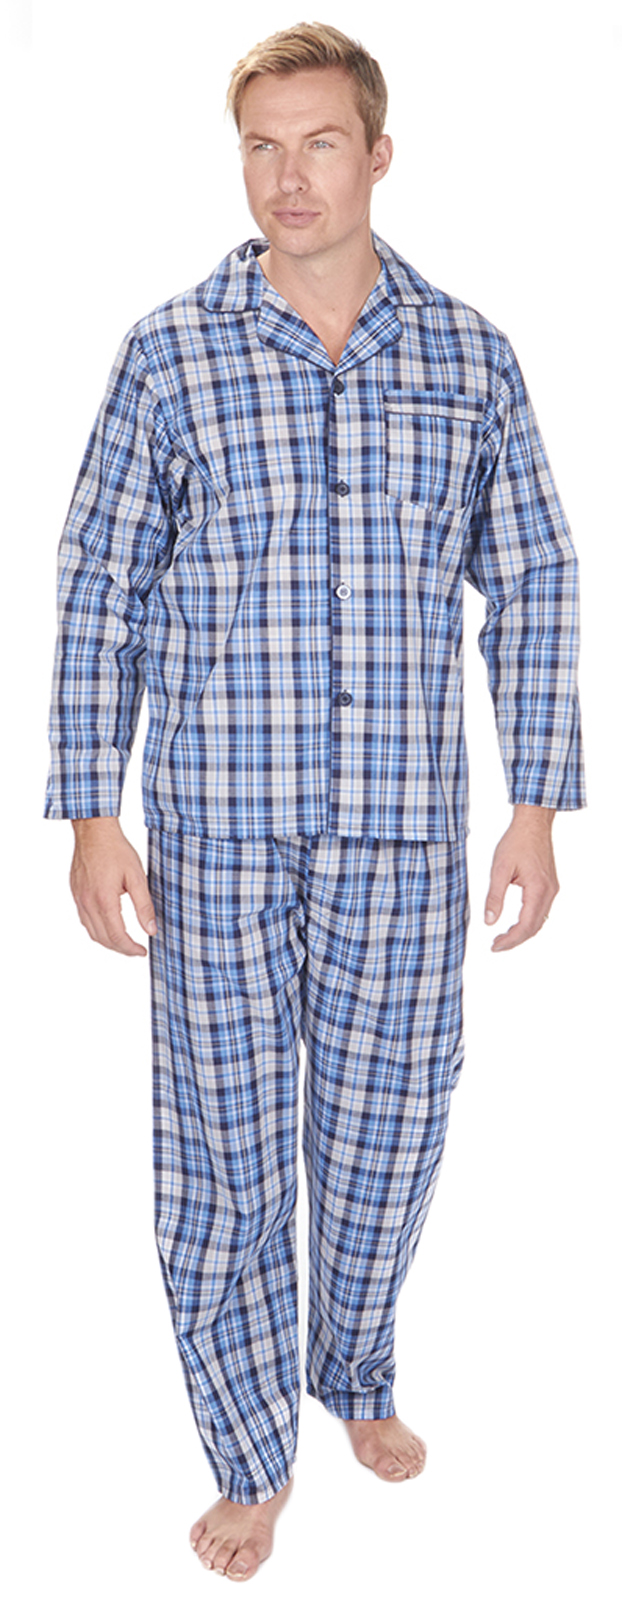 Shop for mens pajama tops online at Target. Free shipping on purchases over $35 and save 5% every day with your Target REDcard.